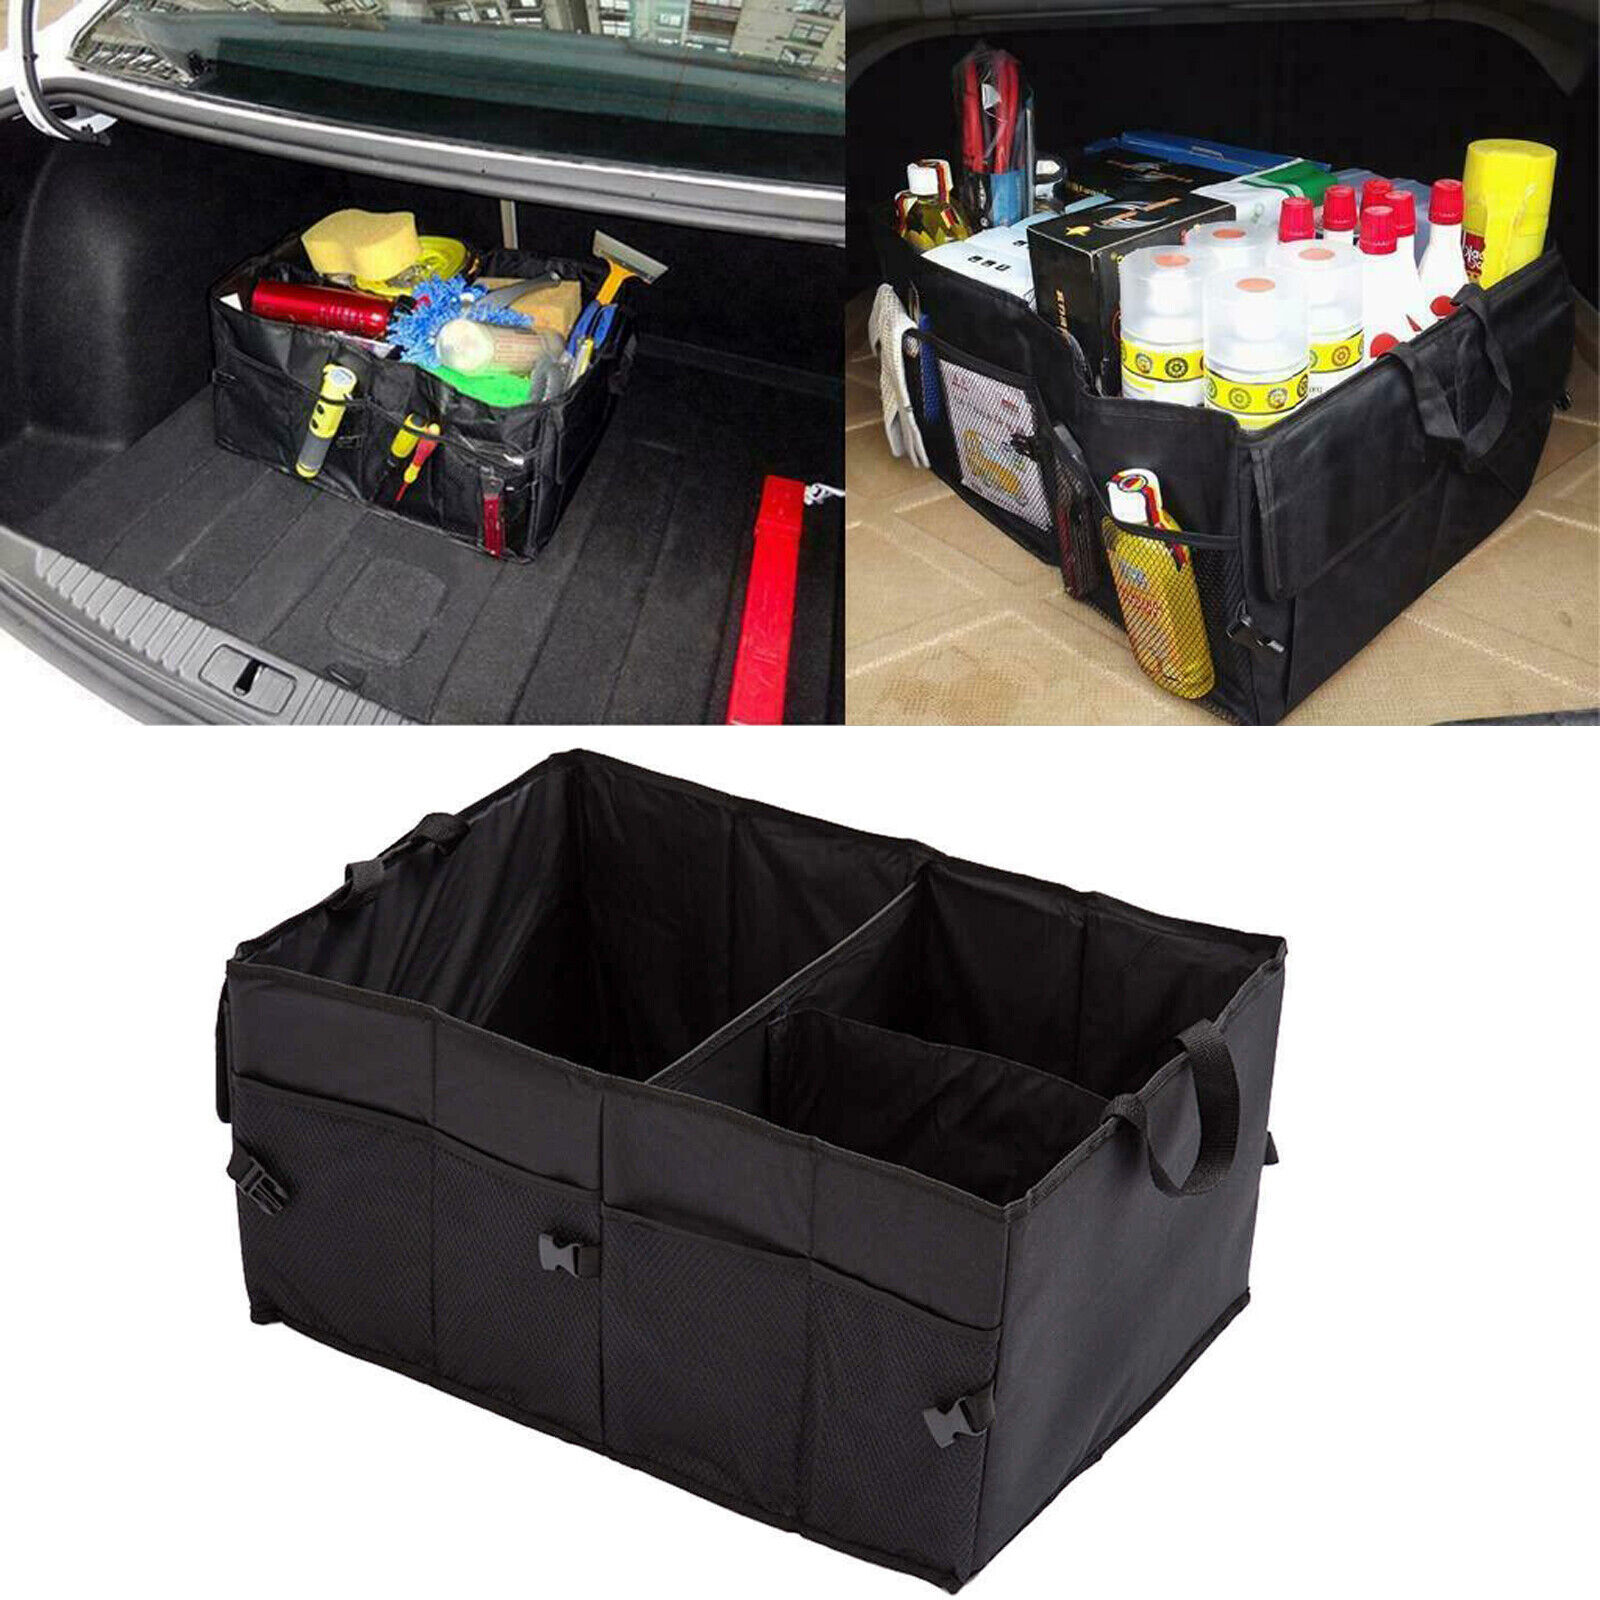 Durable Base Plates the Trunk Tool Boxes Car Trunk Organizer for SUV Detachable Divide and Large Side Pockets for Groceries Waterproof Cargo Box Large Collapsible Trunk Organizers and Storage